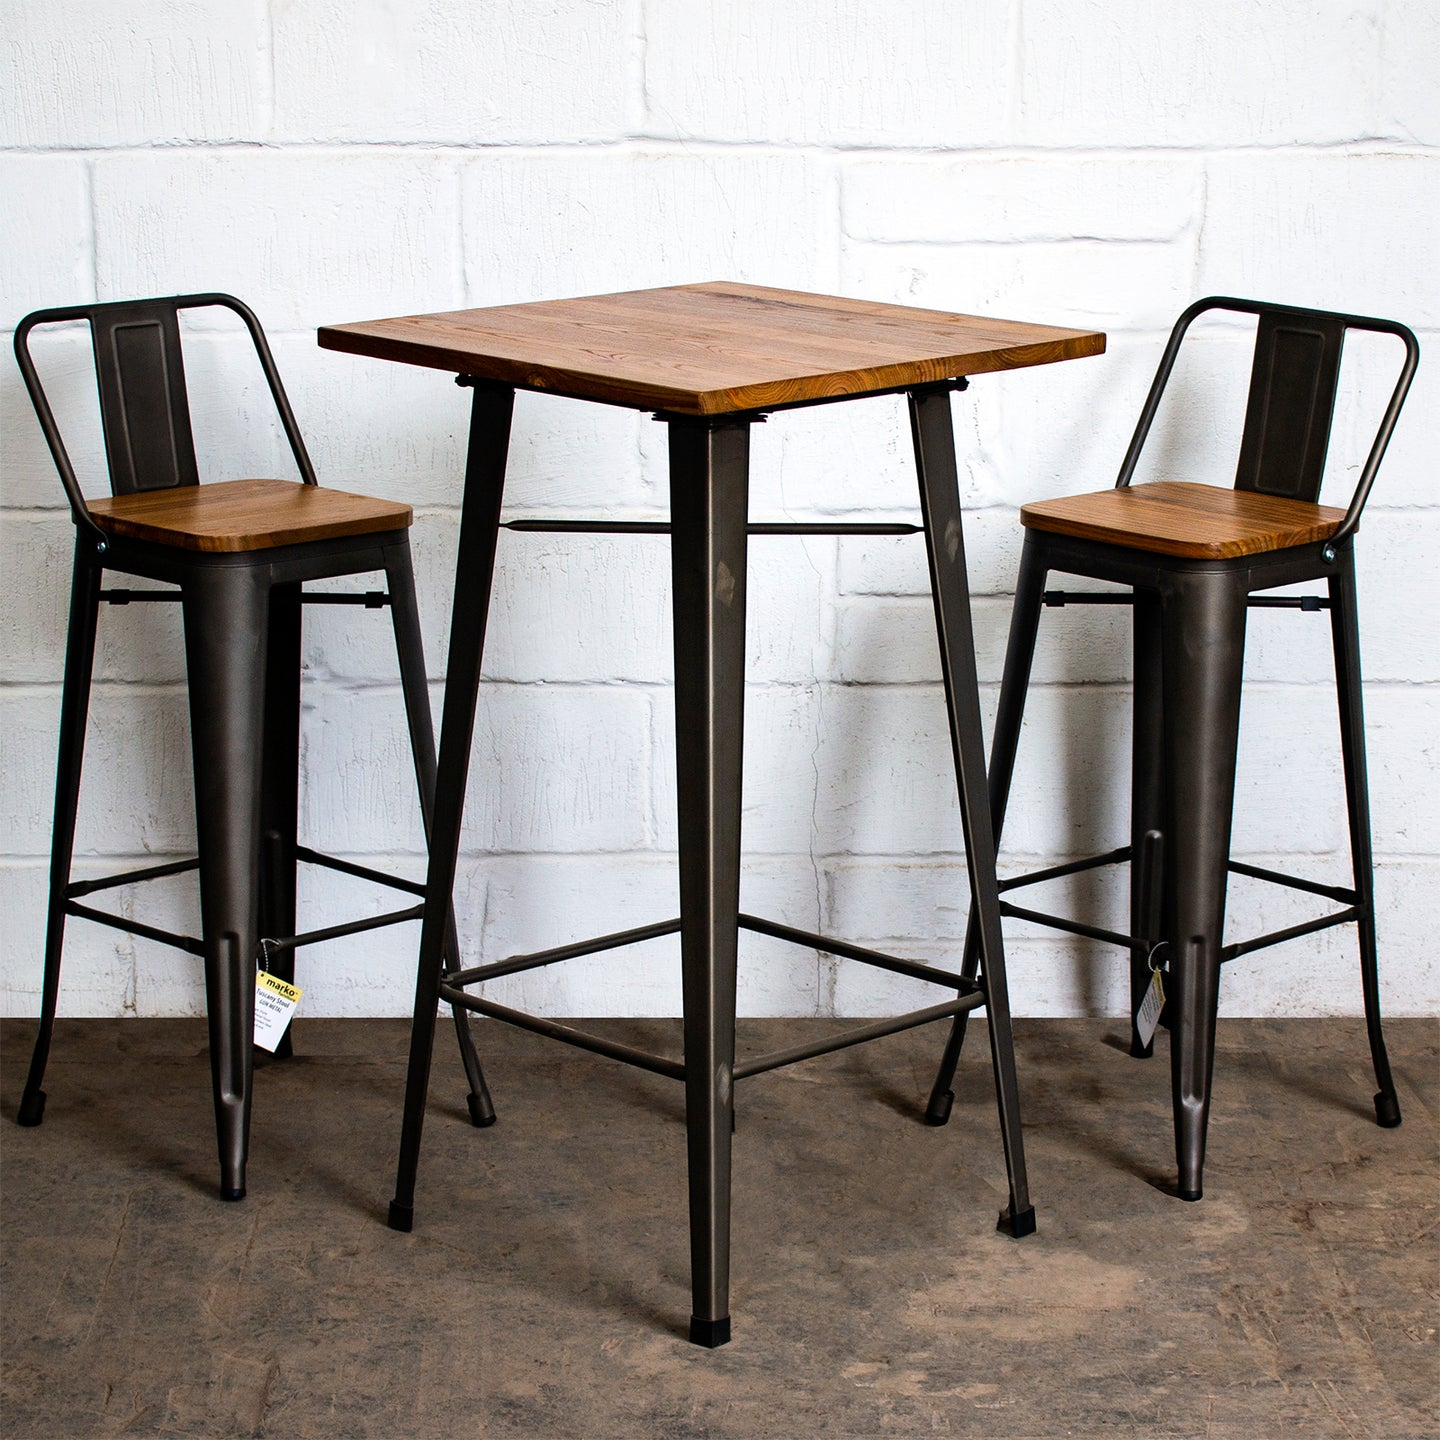 3PC Lodi Table & Tuscany Bar Stool Set - Gun Metal Grey